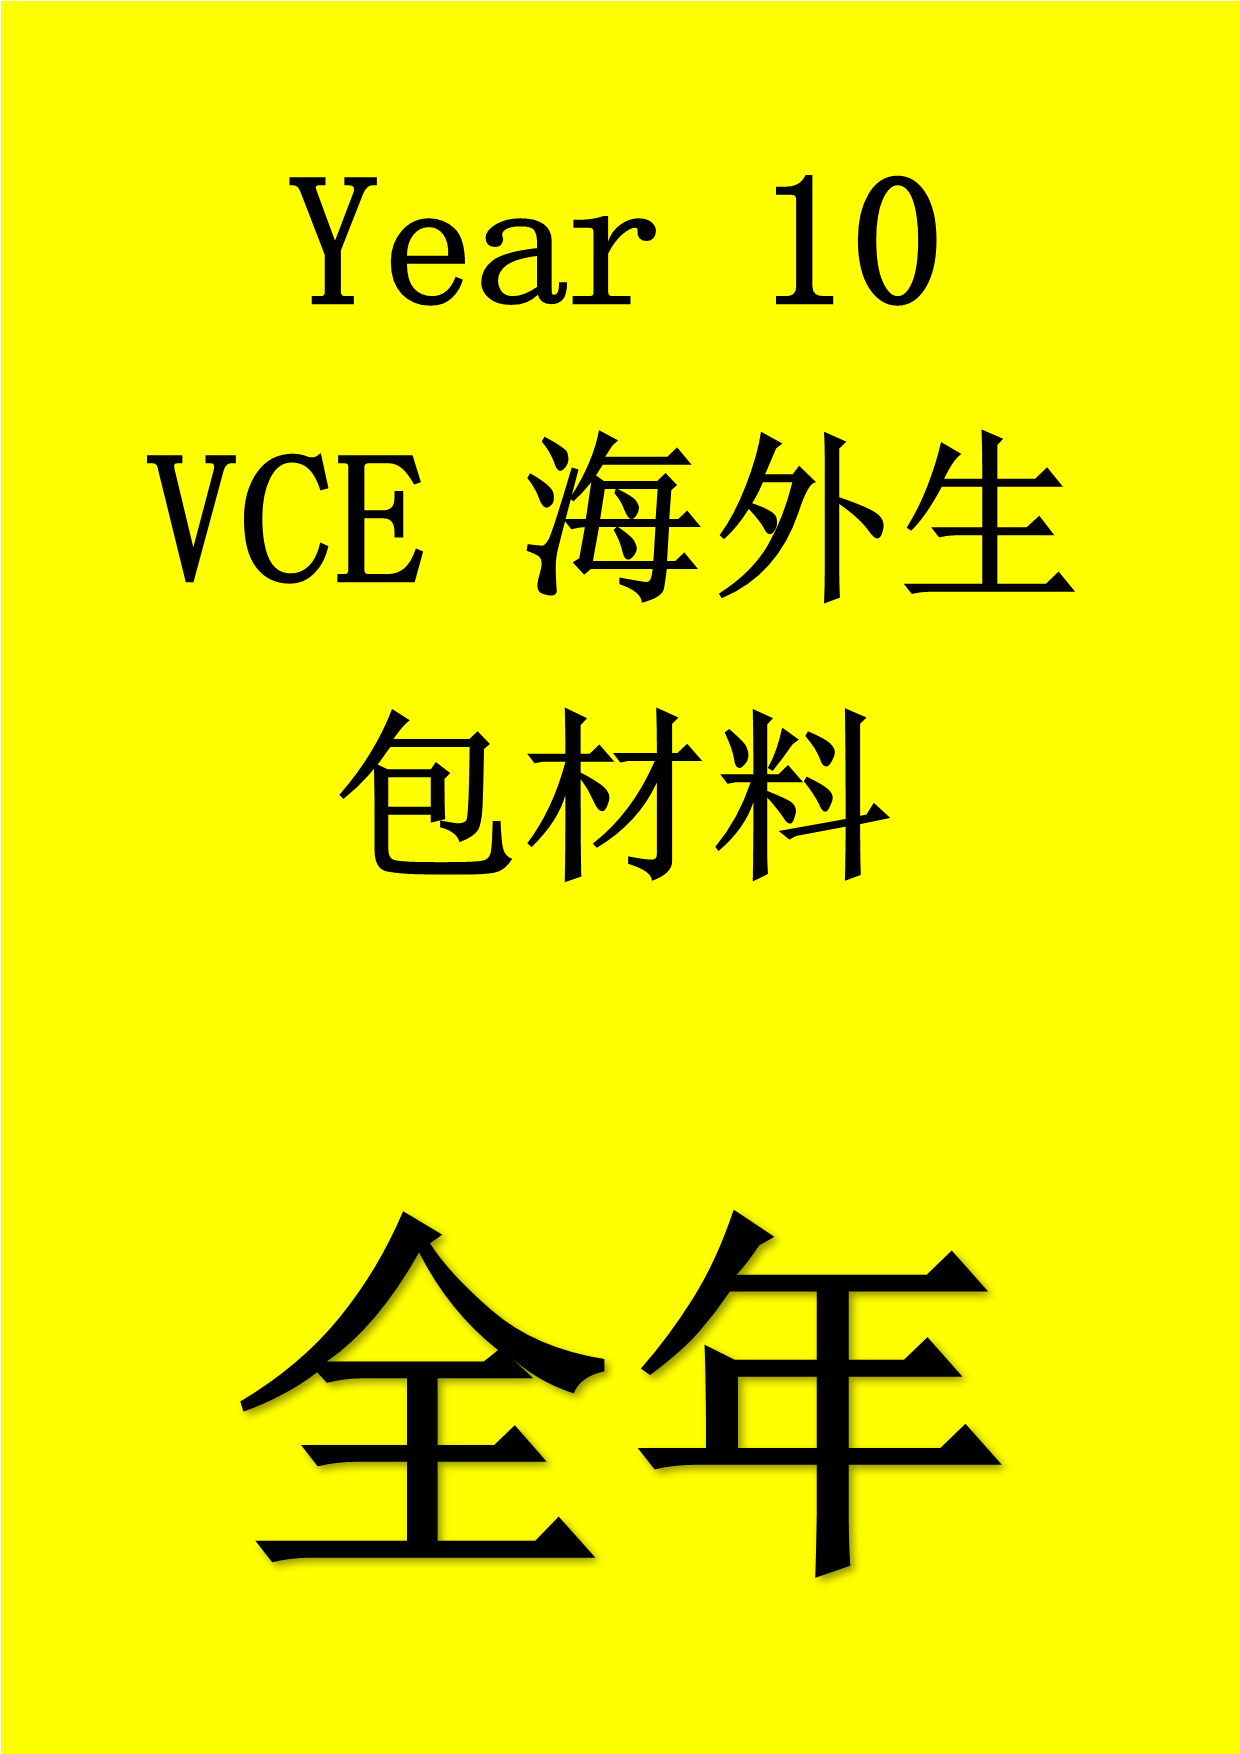 VCE Chinese Year 10 Oversea Student Full year